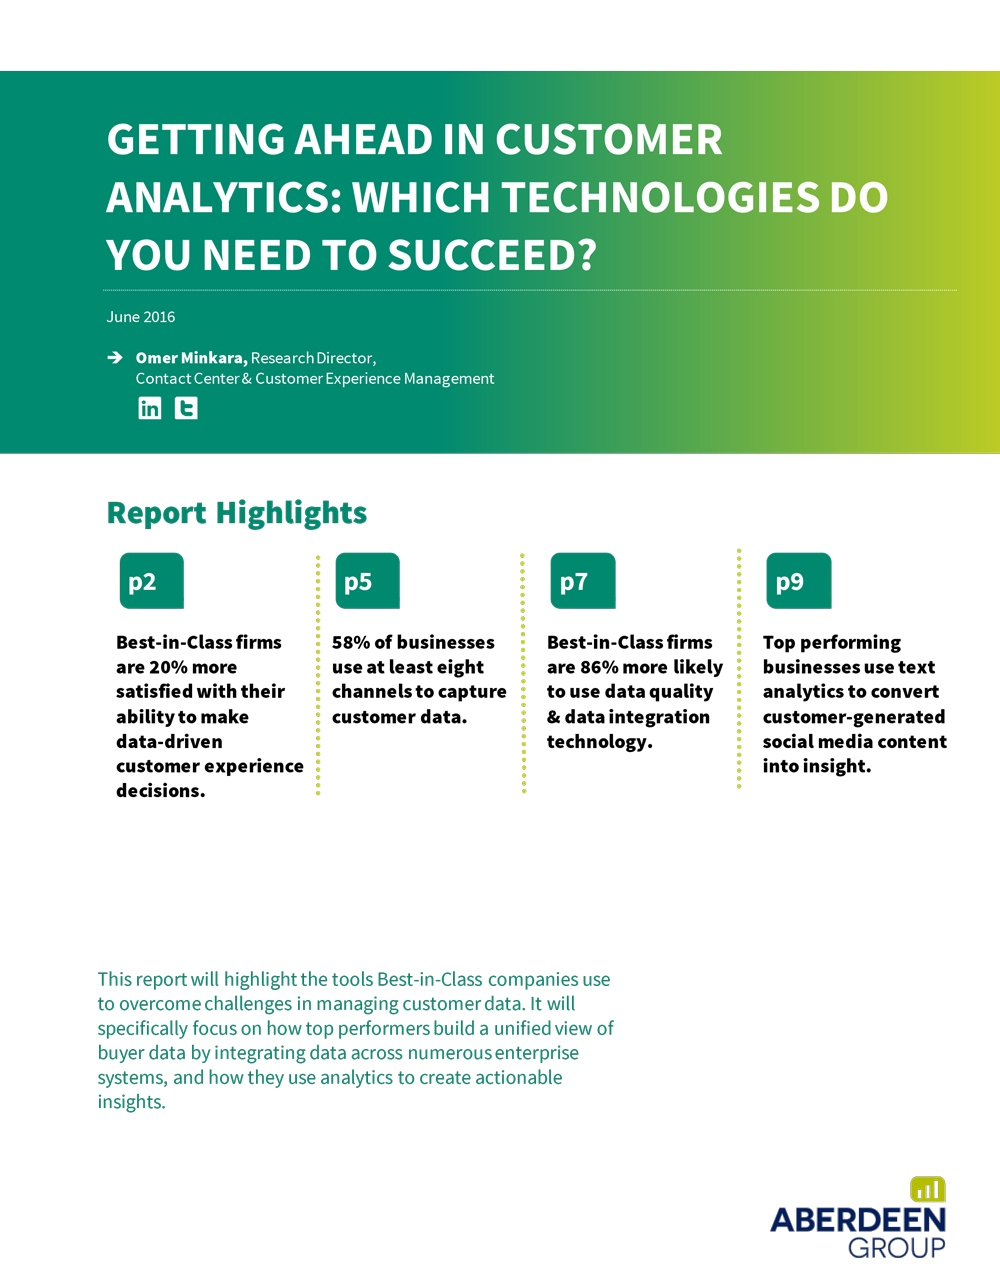 Getting Ahead in Customer Analytics: Which Technologies Do You Need to Succeed?